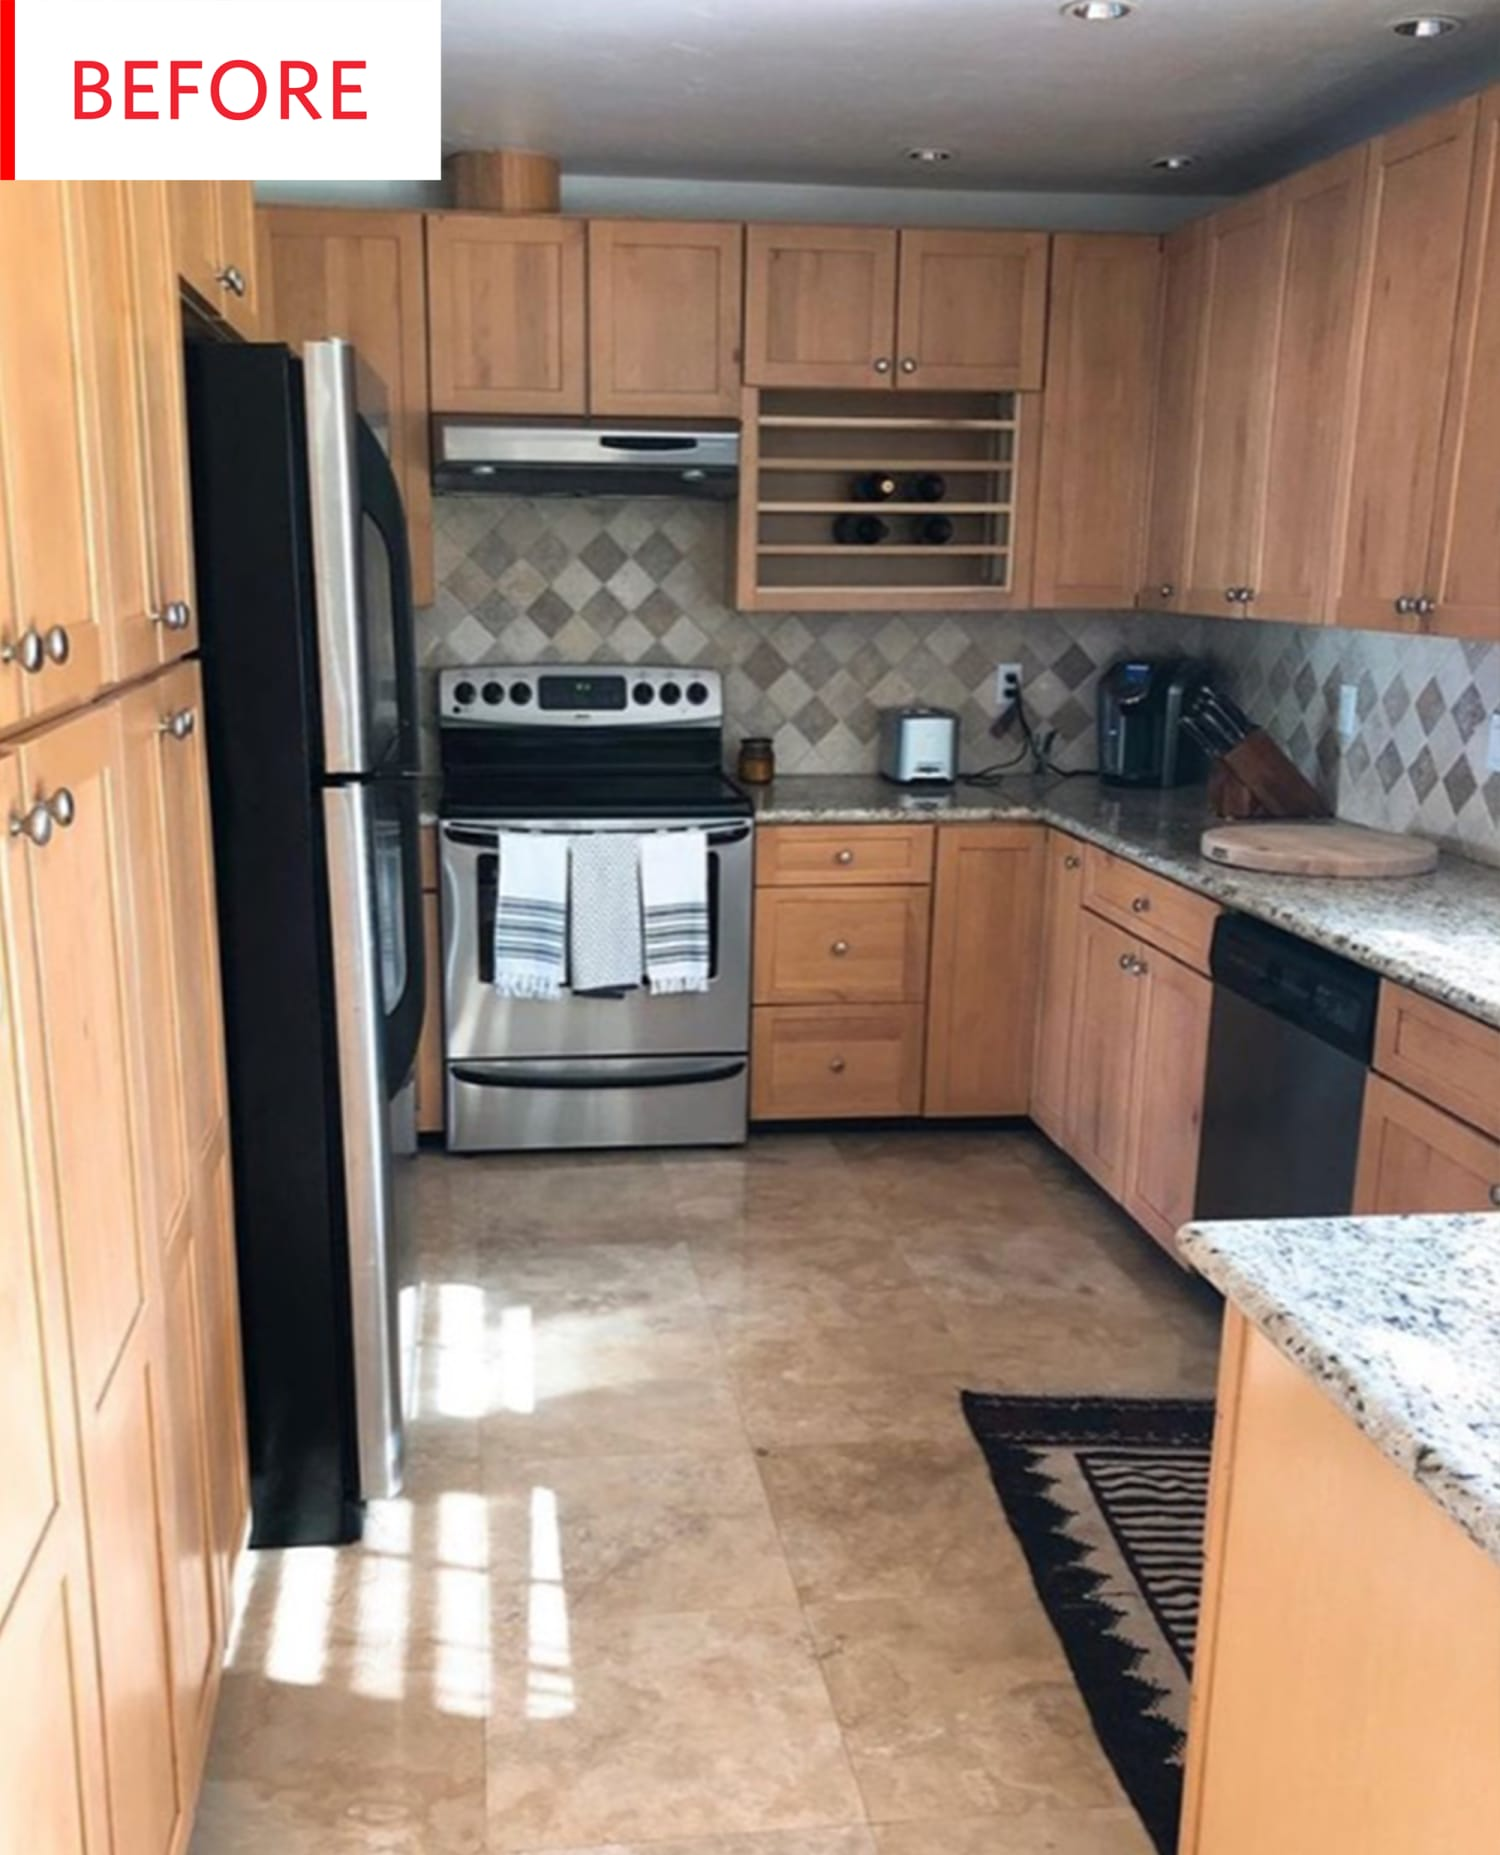 Before and After: A $900 Redo Made This Kitchen Look Twice as Big